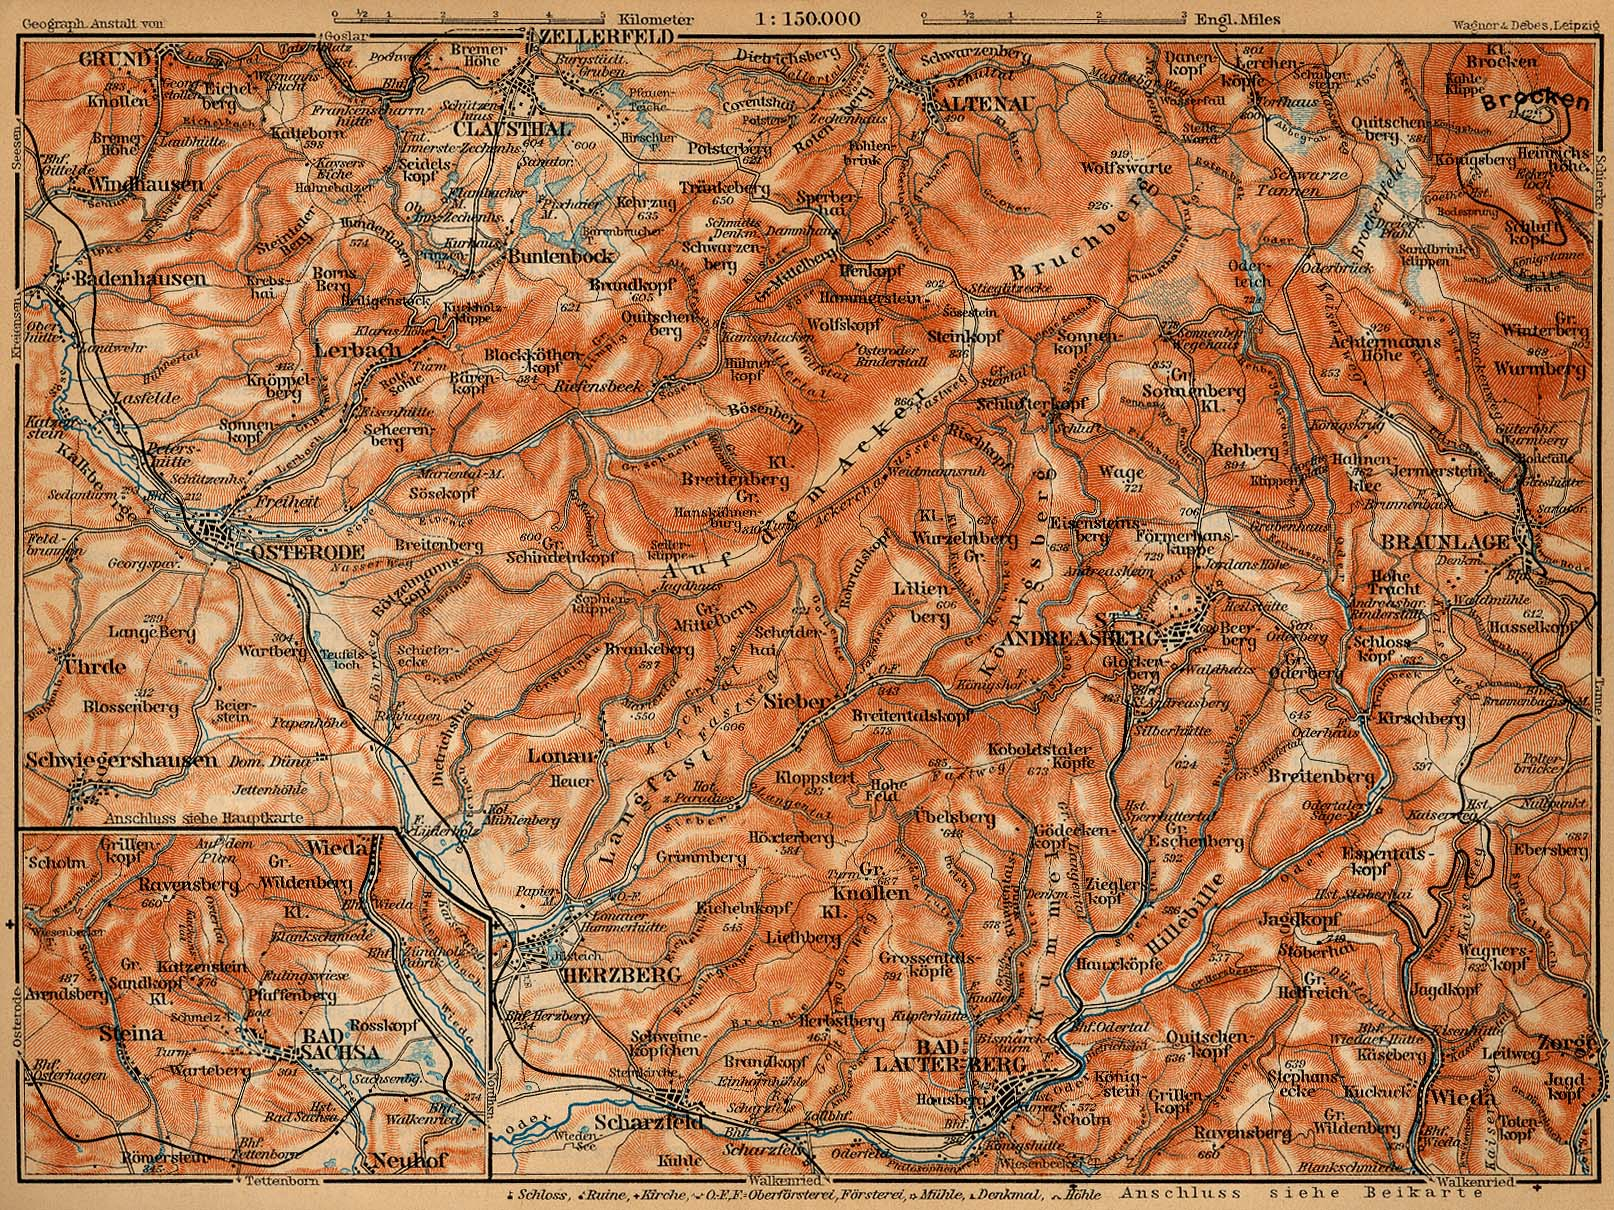 Map of Harz Mountains from Osterode to the Brocken, Germany 1910